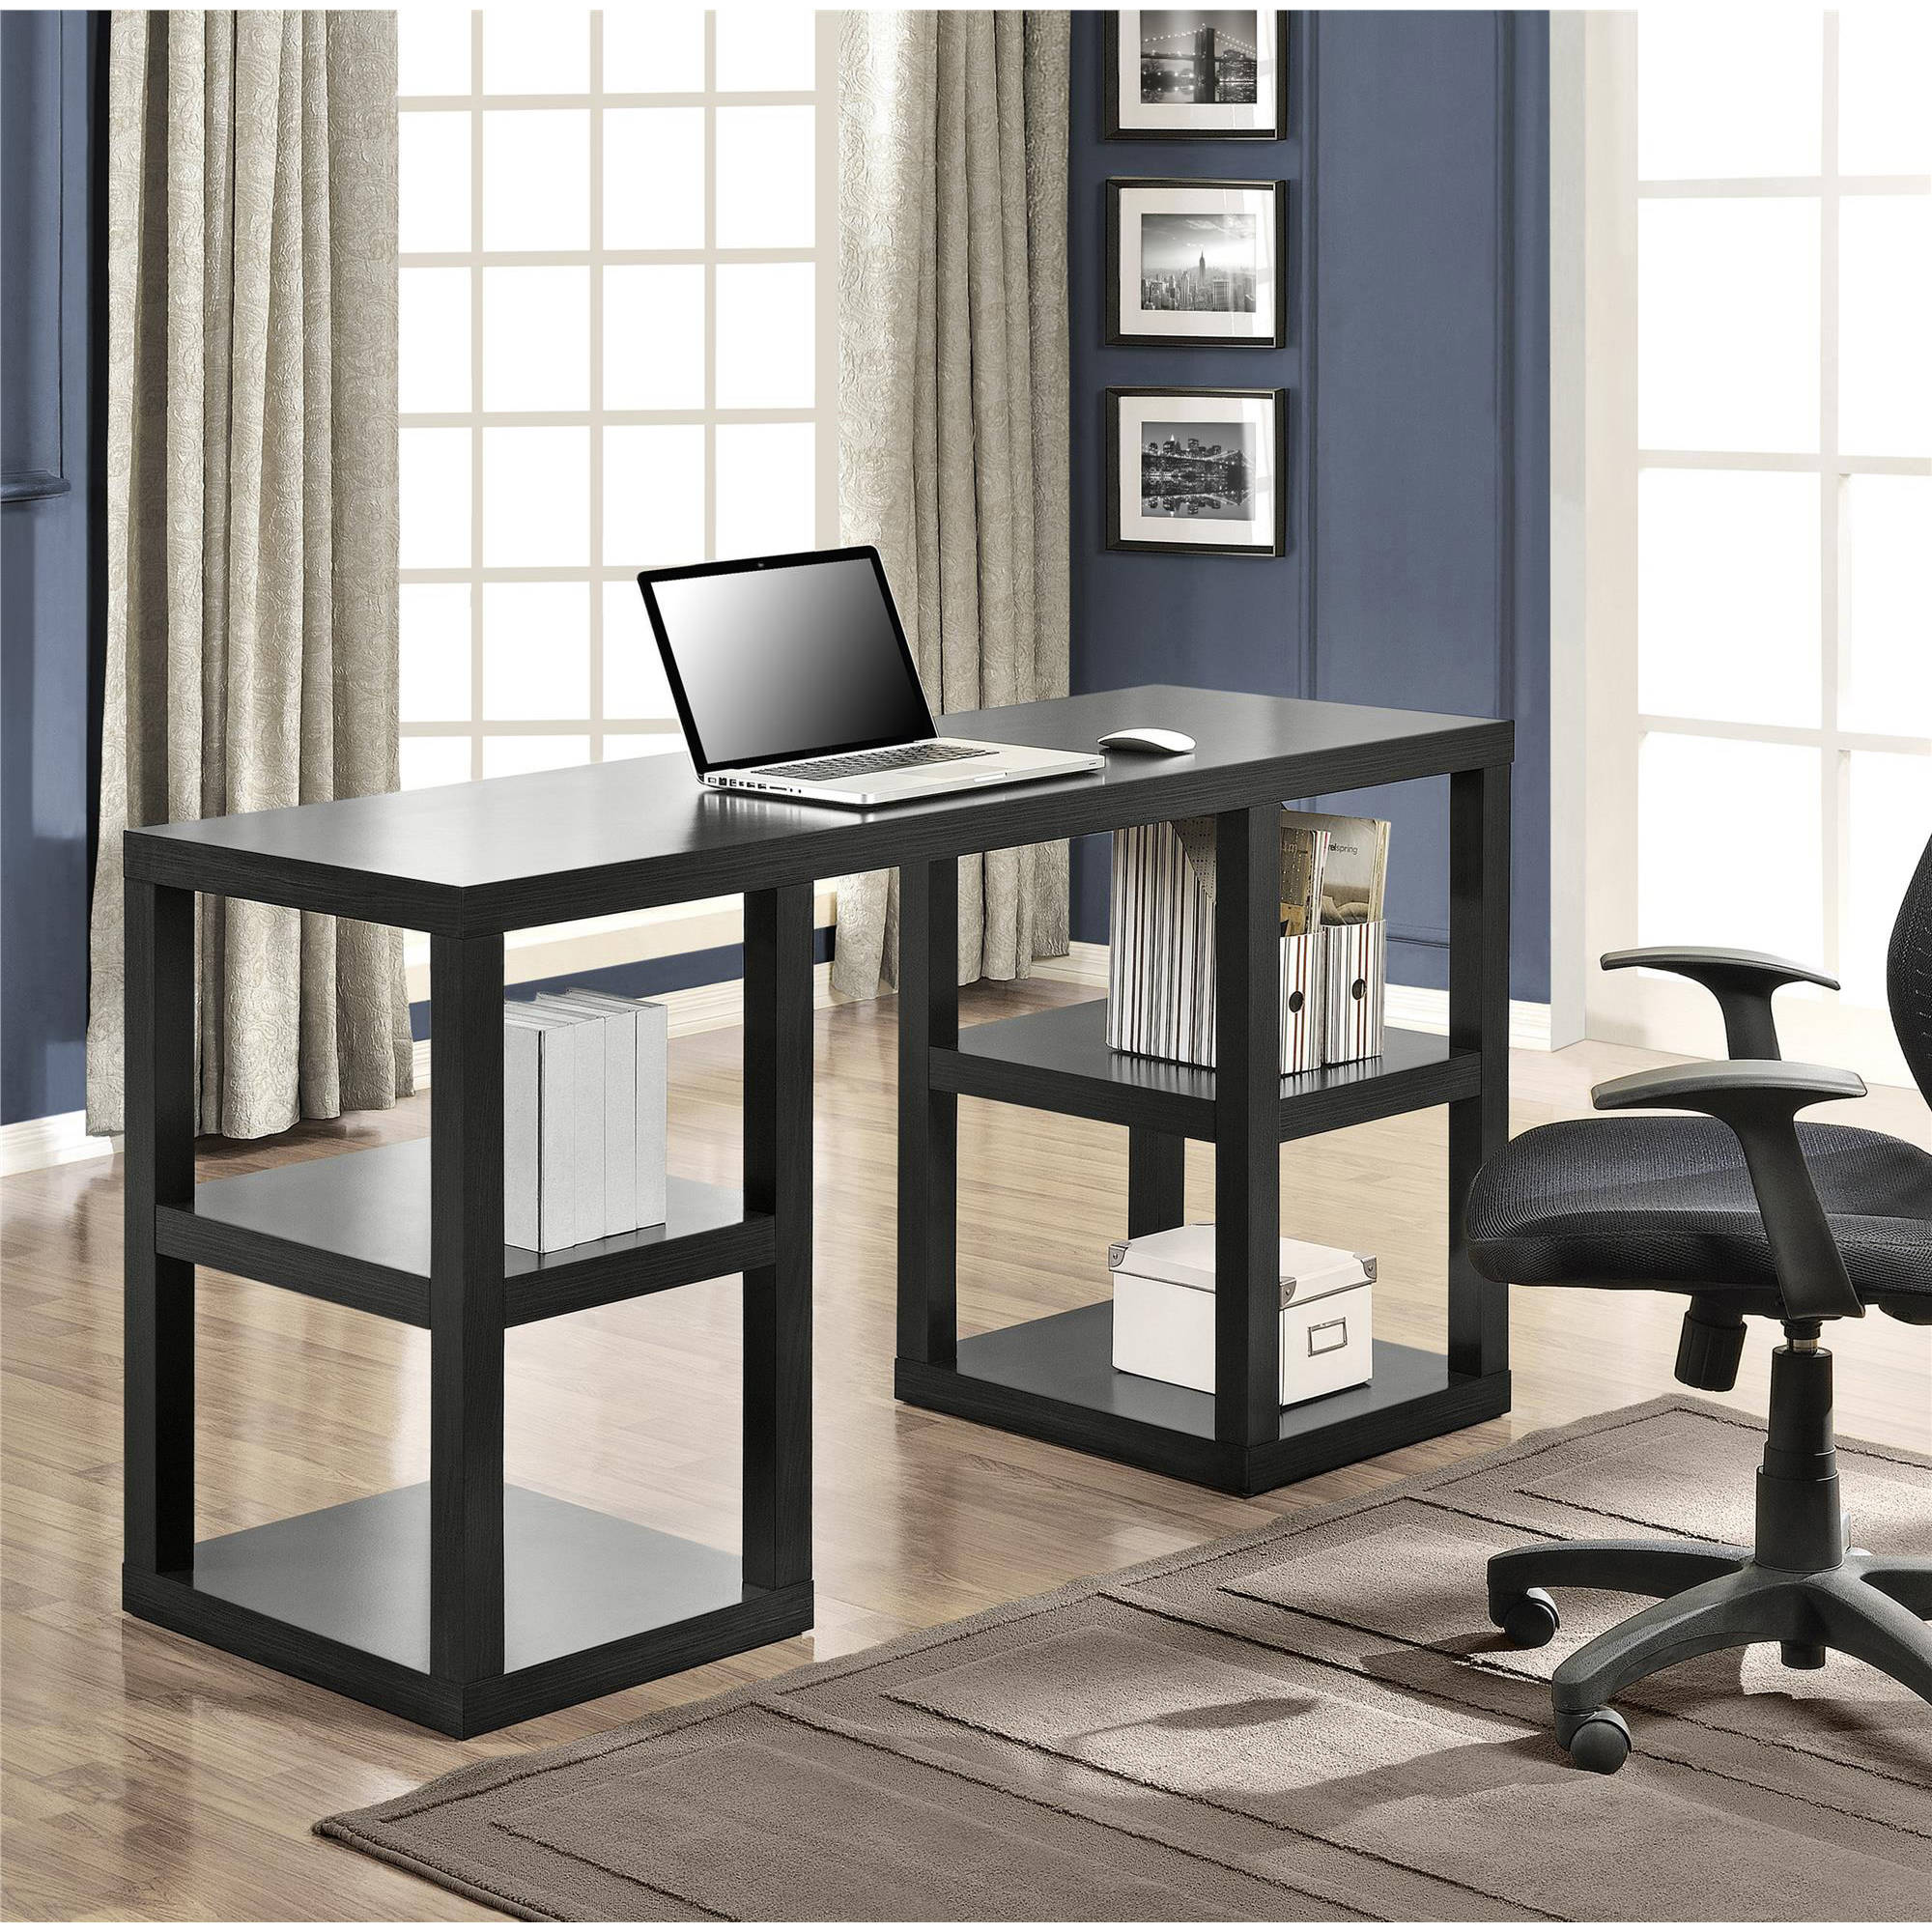 Mainstays Double Pedestal Parsons Desk, Multiple Colors